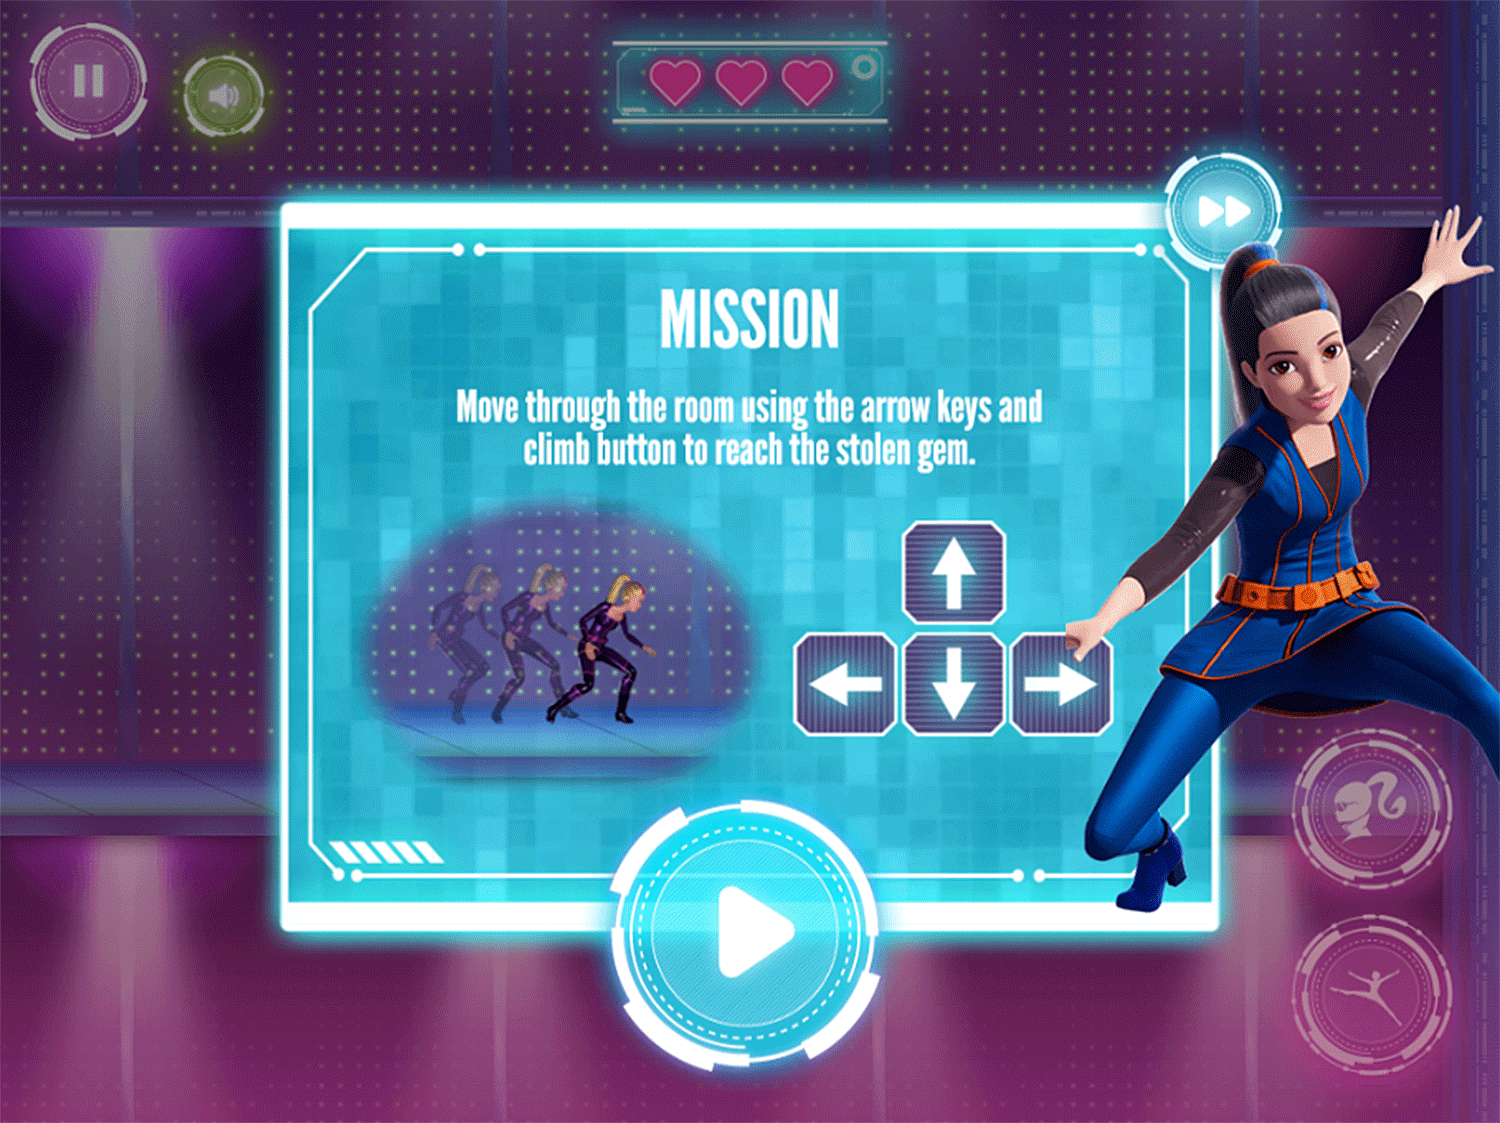 Barbie Spy Squad Academy Game Laser Sneaking How To Play Screenshot.